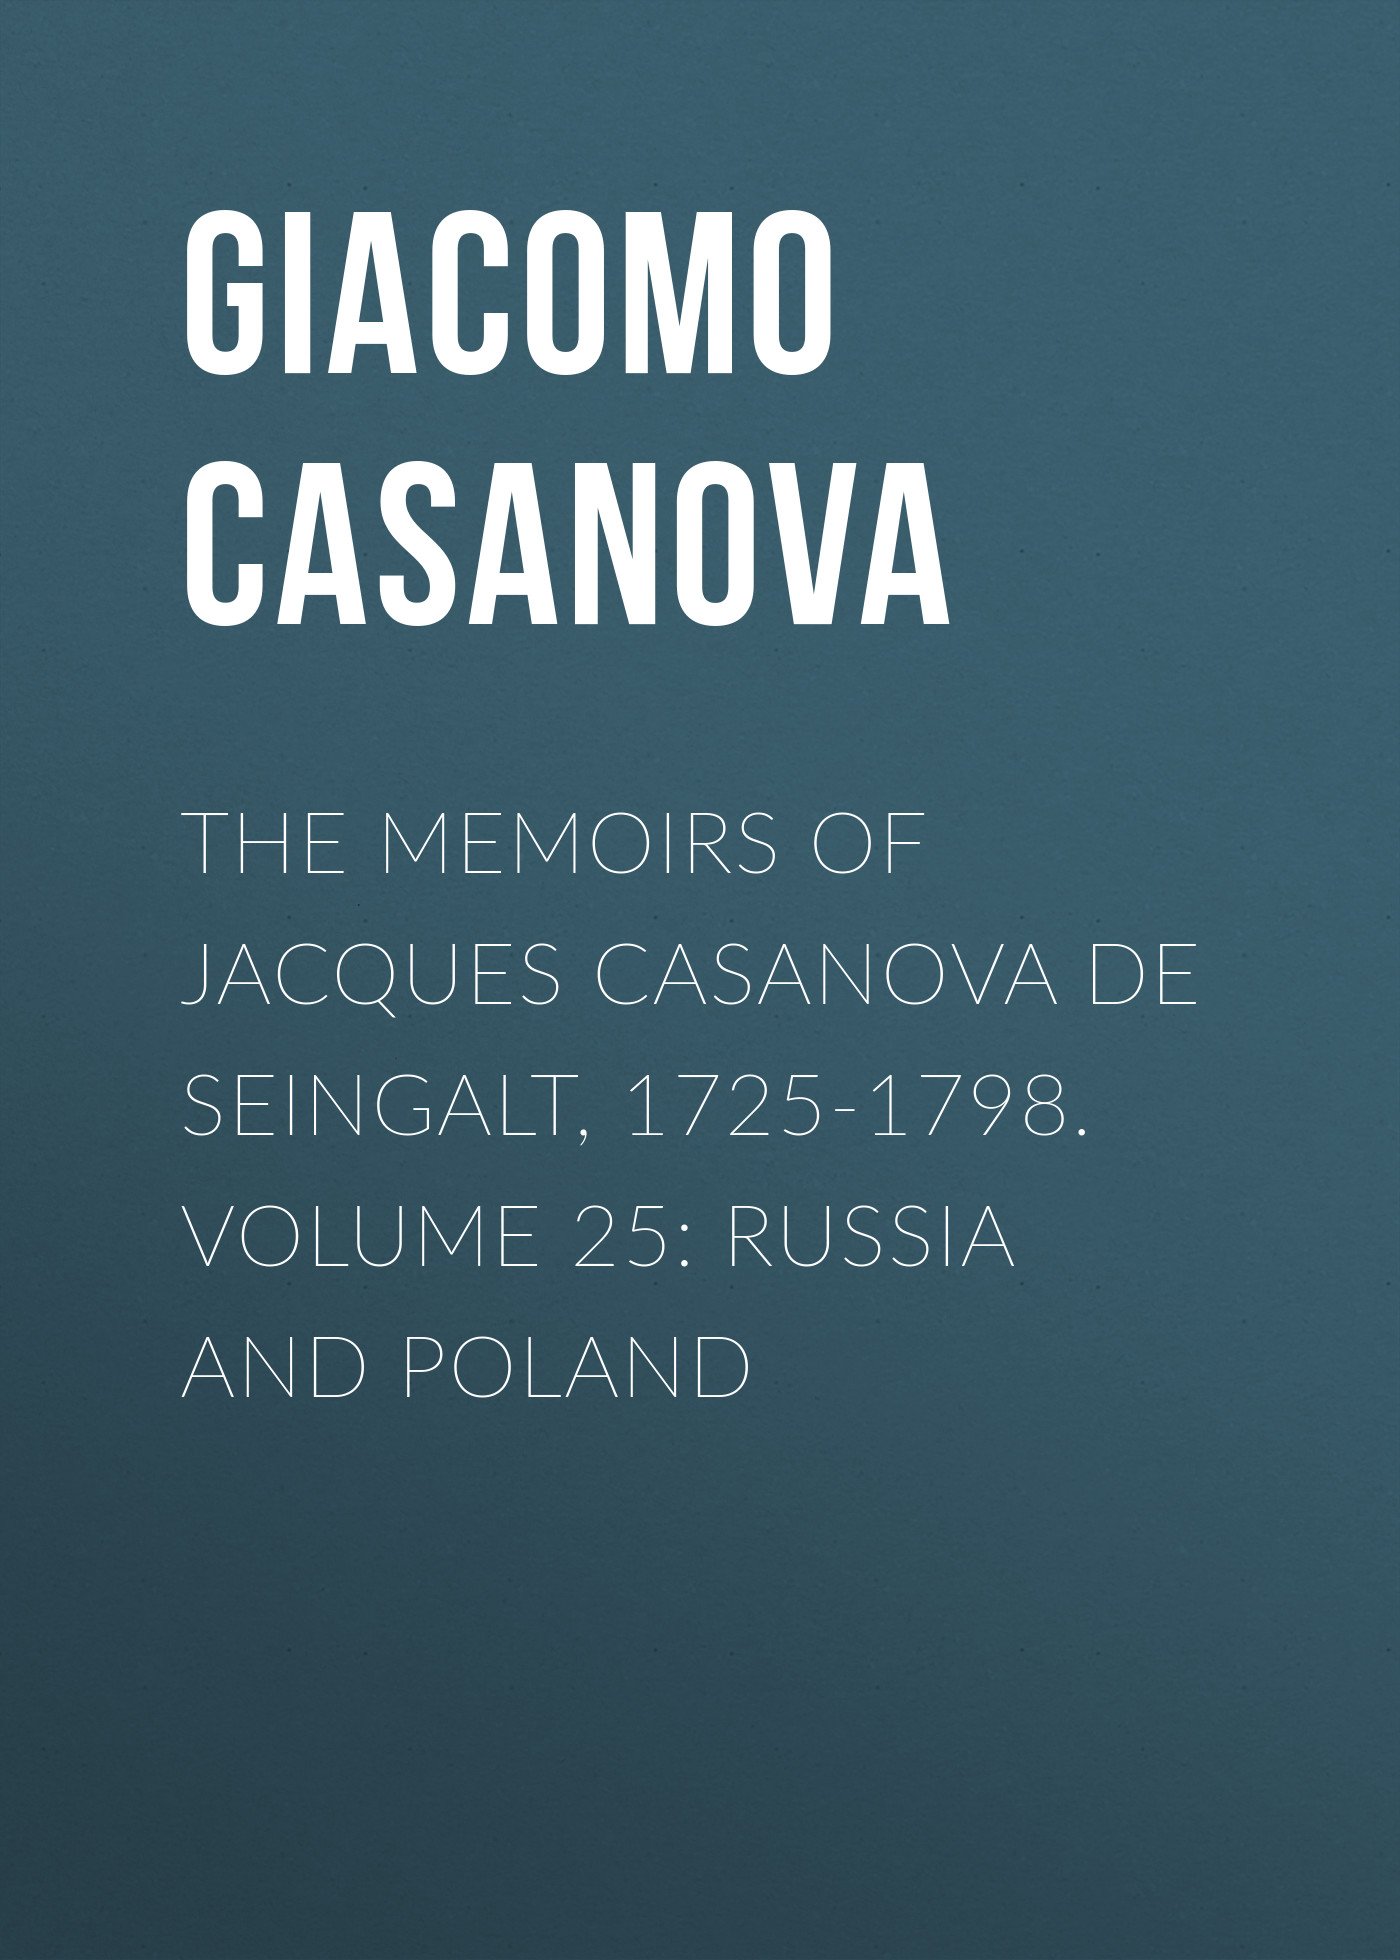 Giacomo Casanova The Memoirs of Jacques Casanova de Seingalt, 1725-1798. Volume 25: Russia and Poland 16 single linked volume potentiometer shaft length 25 half a50k b500k